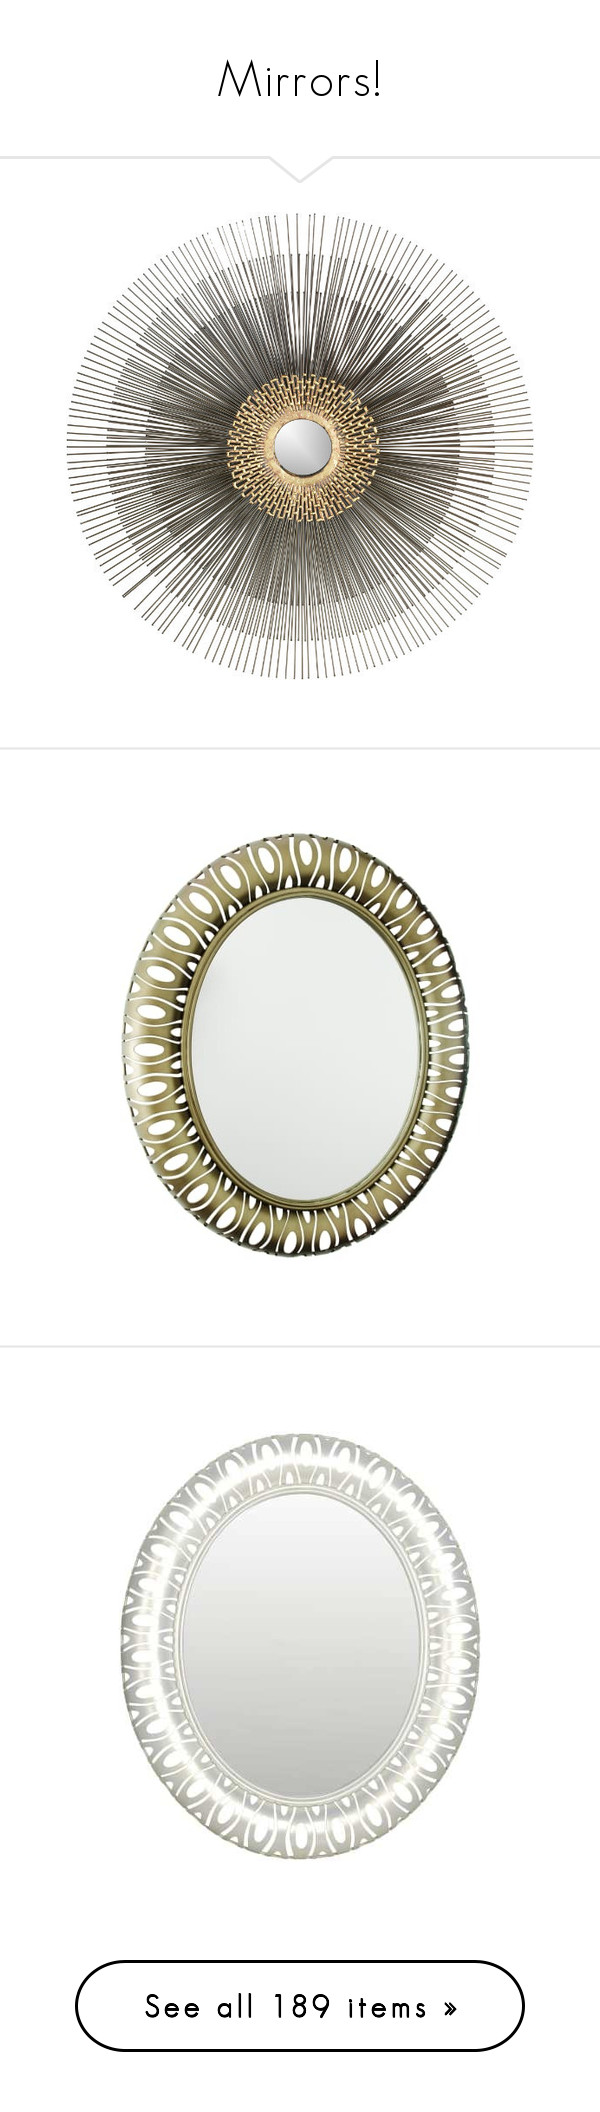 """""""Mirrors!"""" by jewelsinthecrown ❤ liked on Polyvore featuring home, home decor, mirrors, decorating, geometric home decor, spring home decor, geometric mirror, crate and barrel mirrors, crate and barrel wall mirror and bronze"""